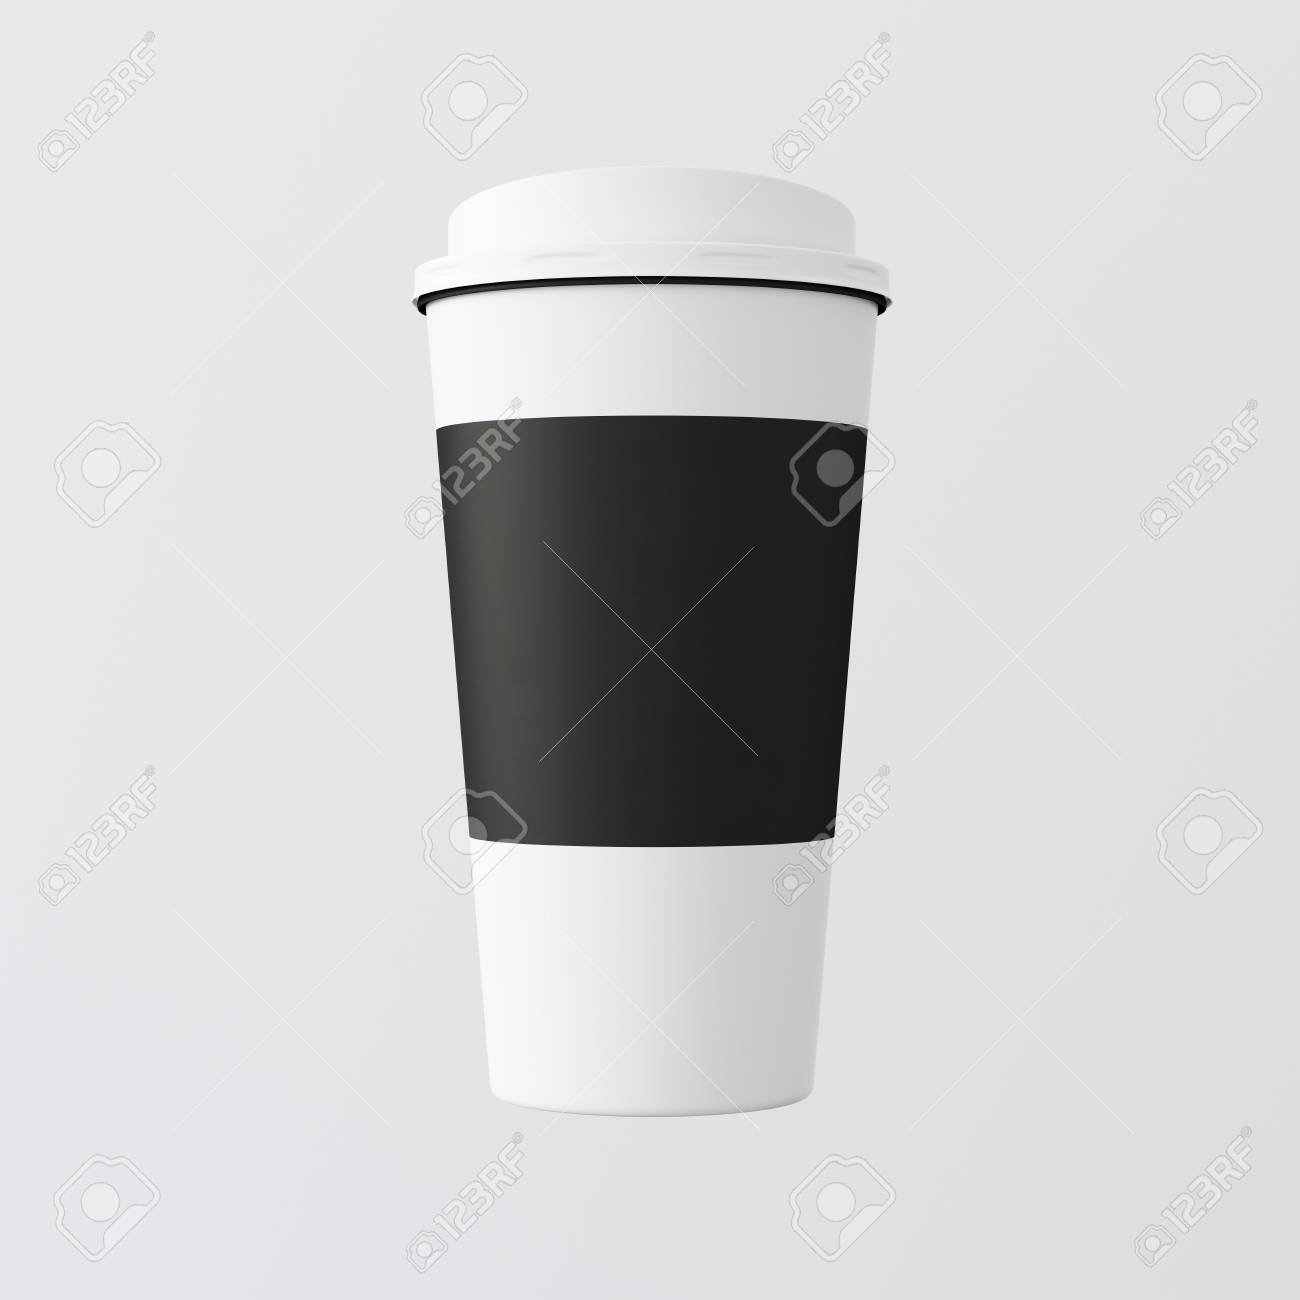 Take Gray Away Paper Plastic one White Background Cup Coffee lJ5uKTF31c